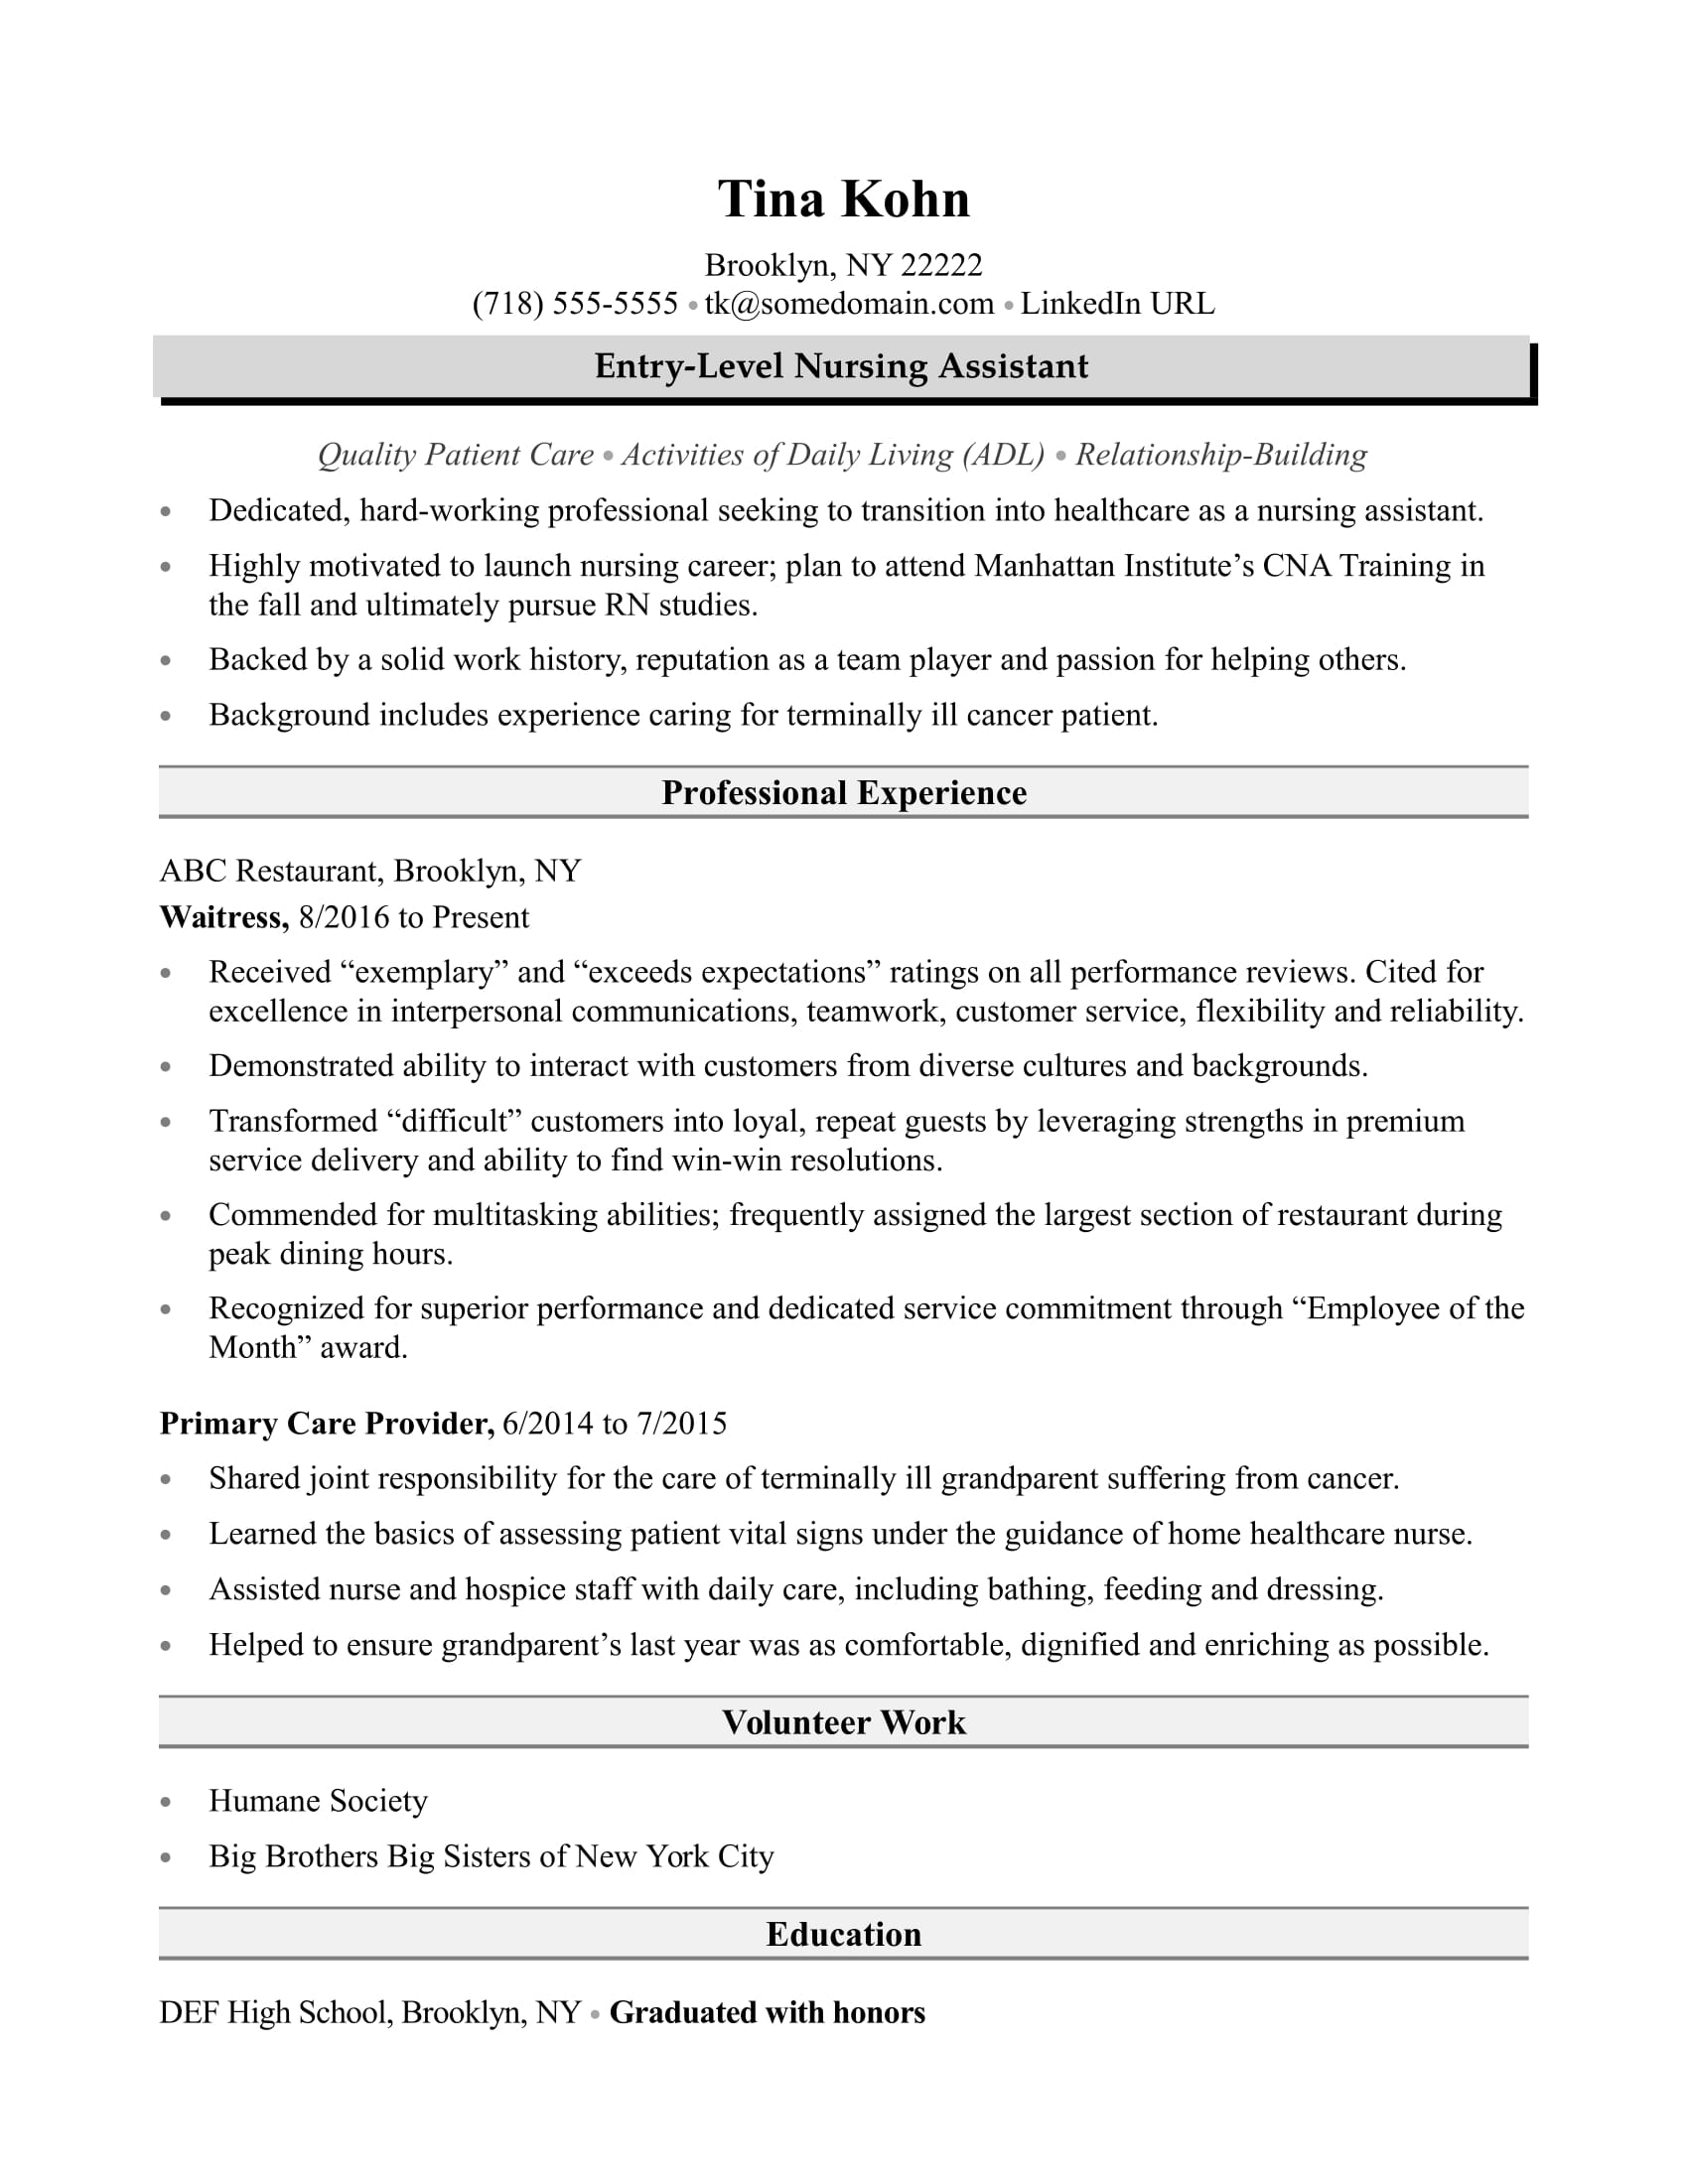 Nursing assistant resume sample monster nursing assistant resume sample xflitez Gallery